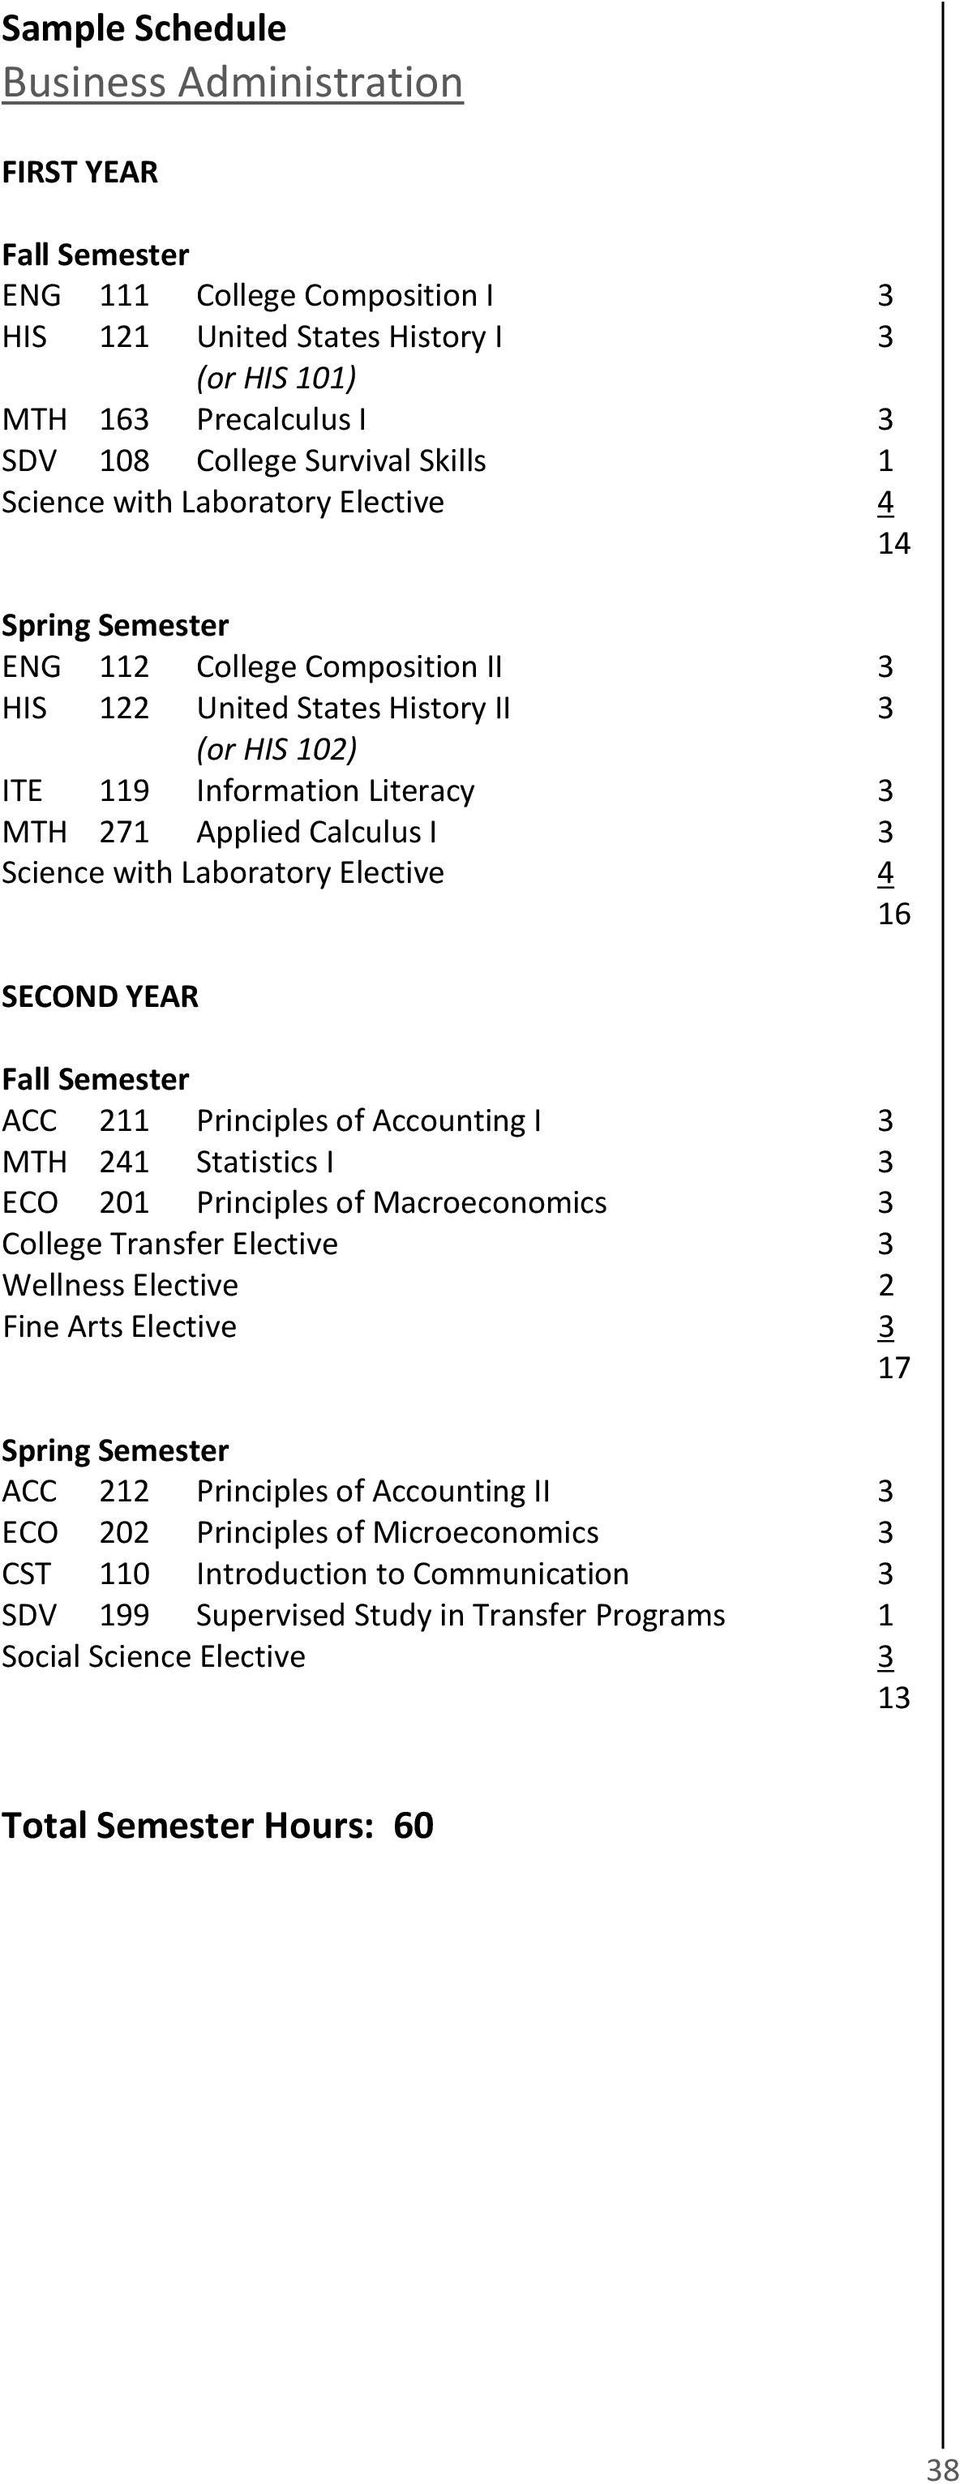 Principles of Accounting I 3 MTH 241 Statistics I 3 ECO 201 Principles of Macroeconomics 3 College Transfer Elective 3 Wellness Elective 2 Fine Arts Elective 3 17 ACC 212 Principles of